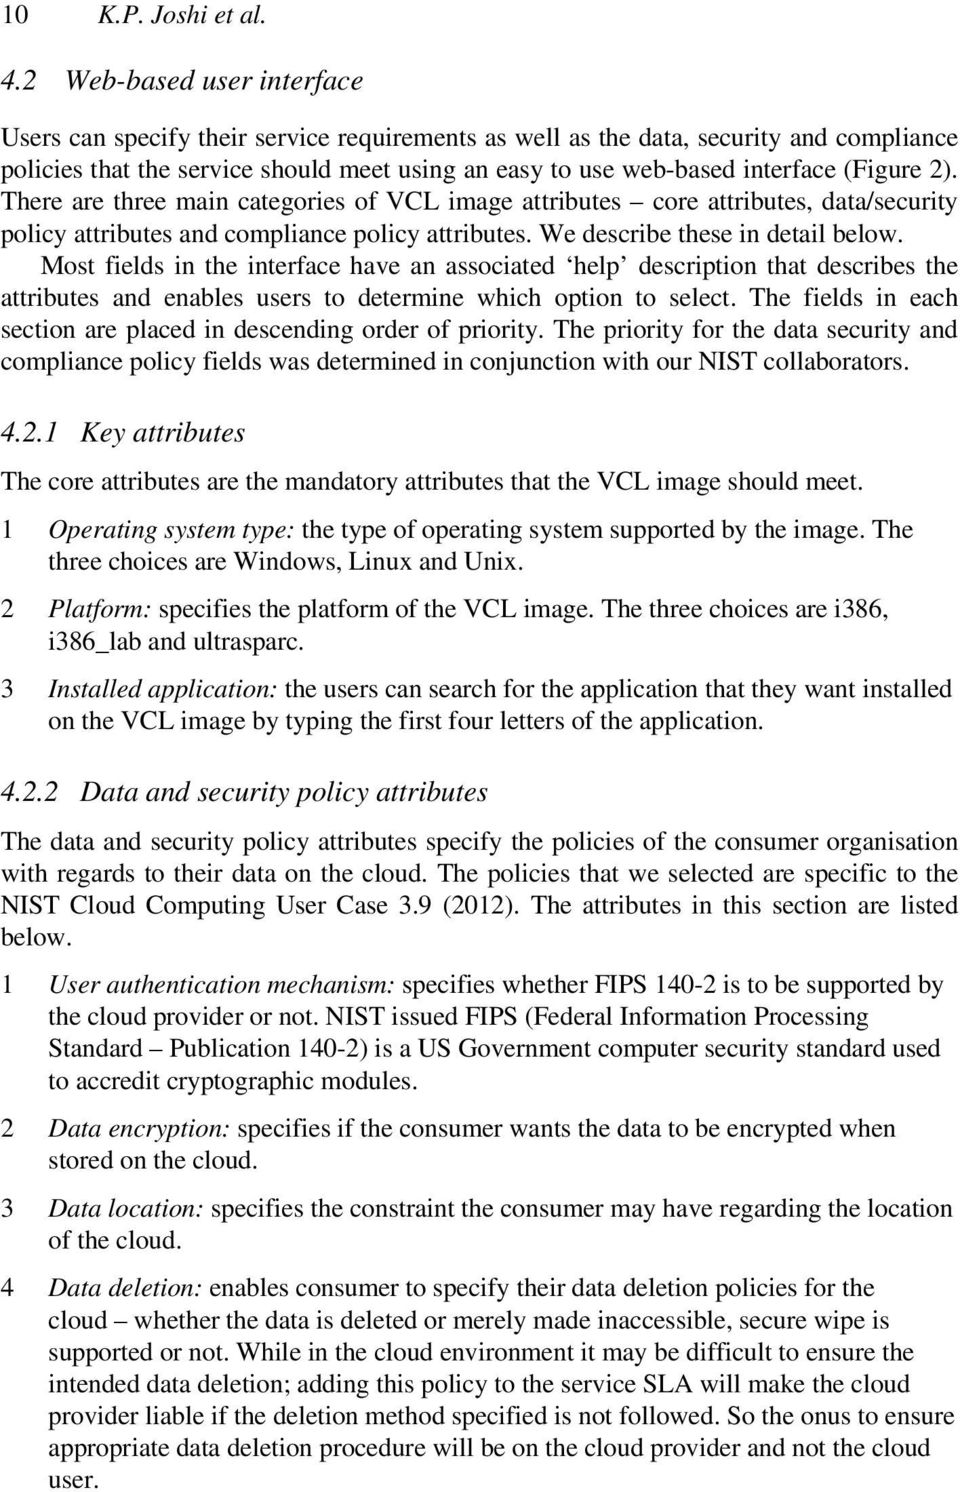 (Figure 2). There are three main categories of VCL image attributes core attributes, data/security policy attributes and compliance policy attributes. We describe these in detail below.